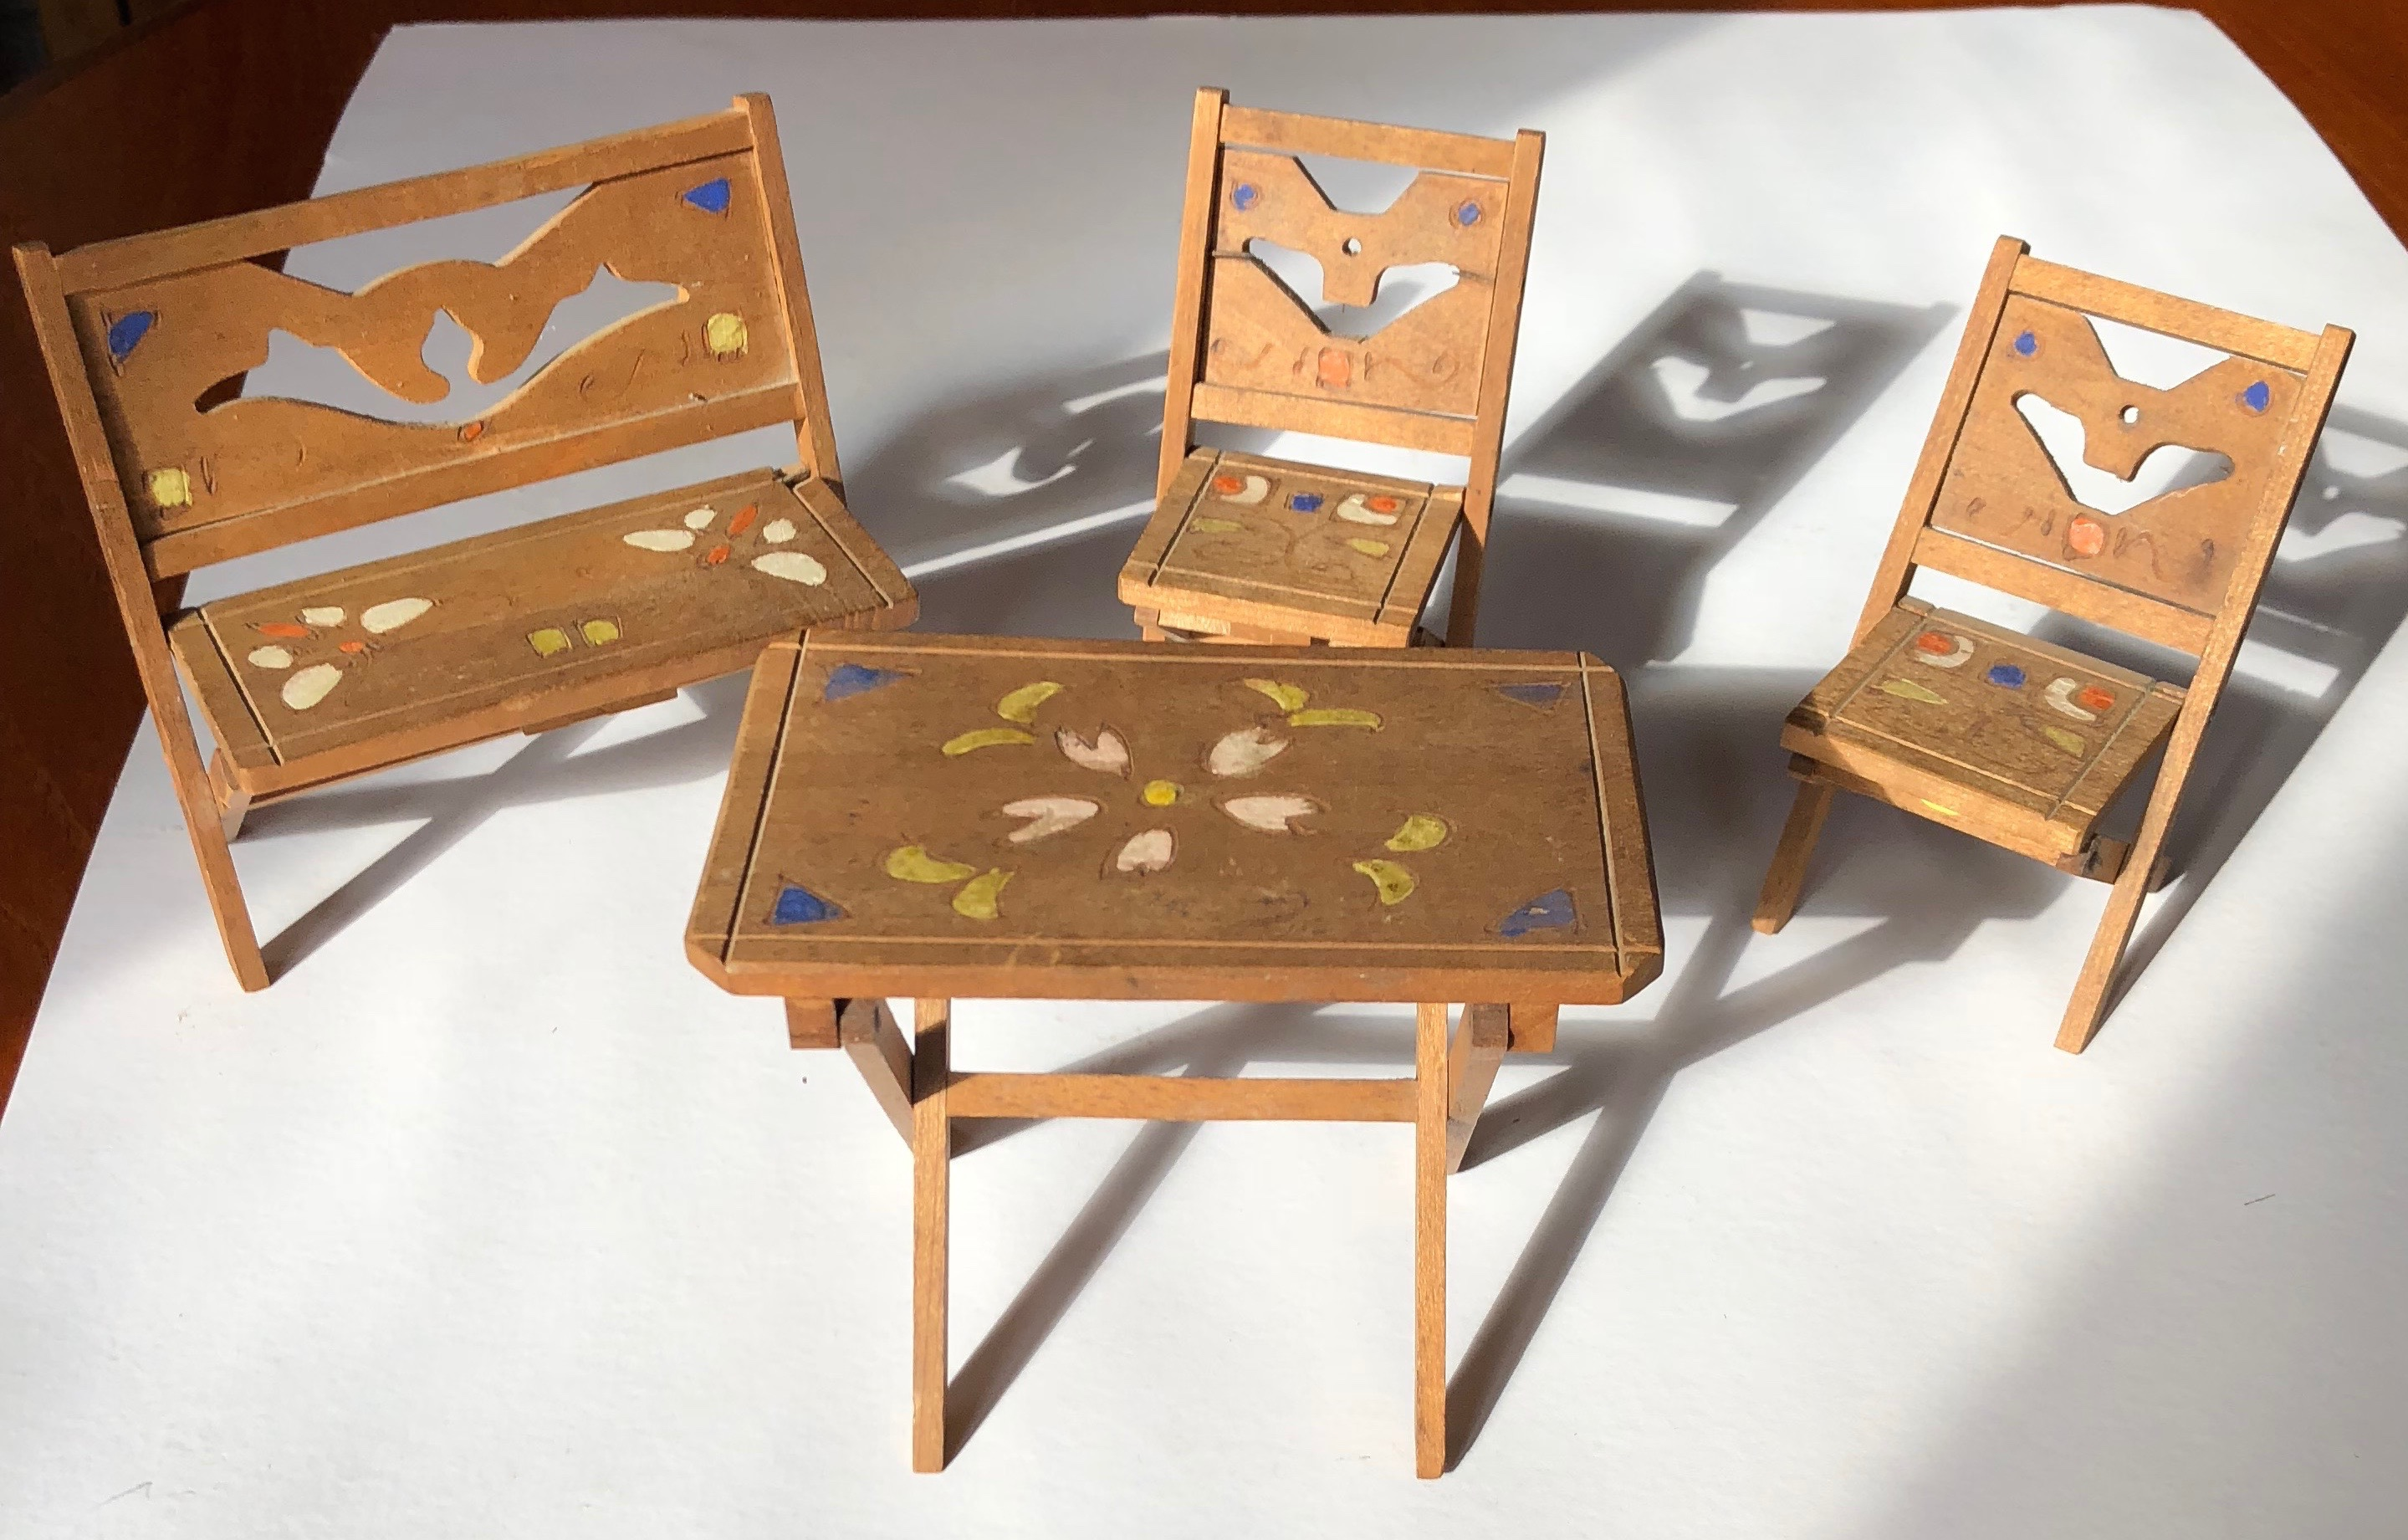 Wooden play dinning setting ( Artist unknown)